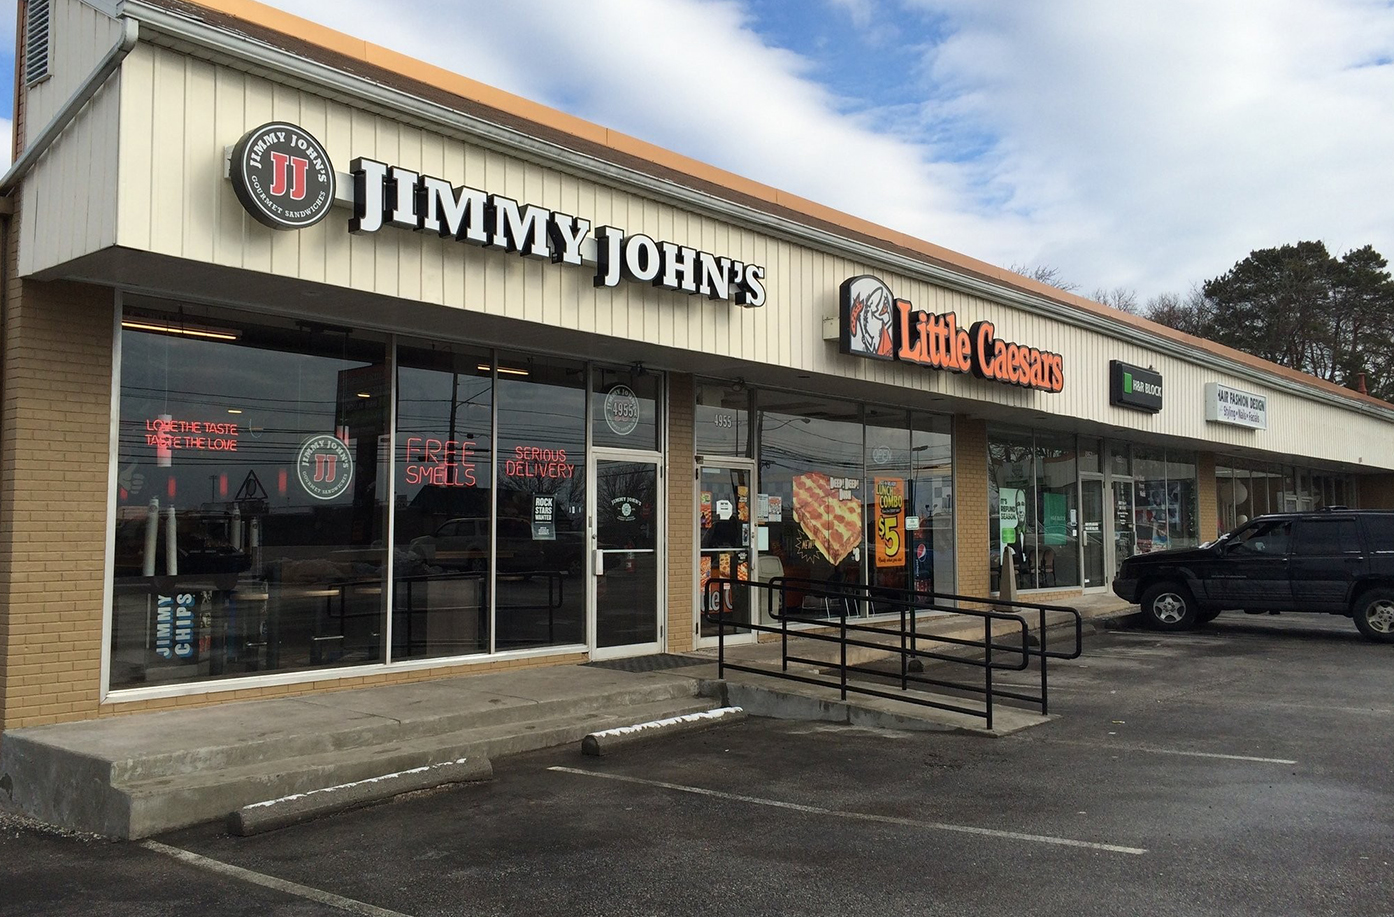 jimmy john's slim 4